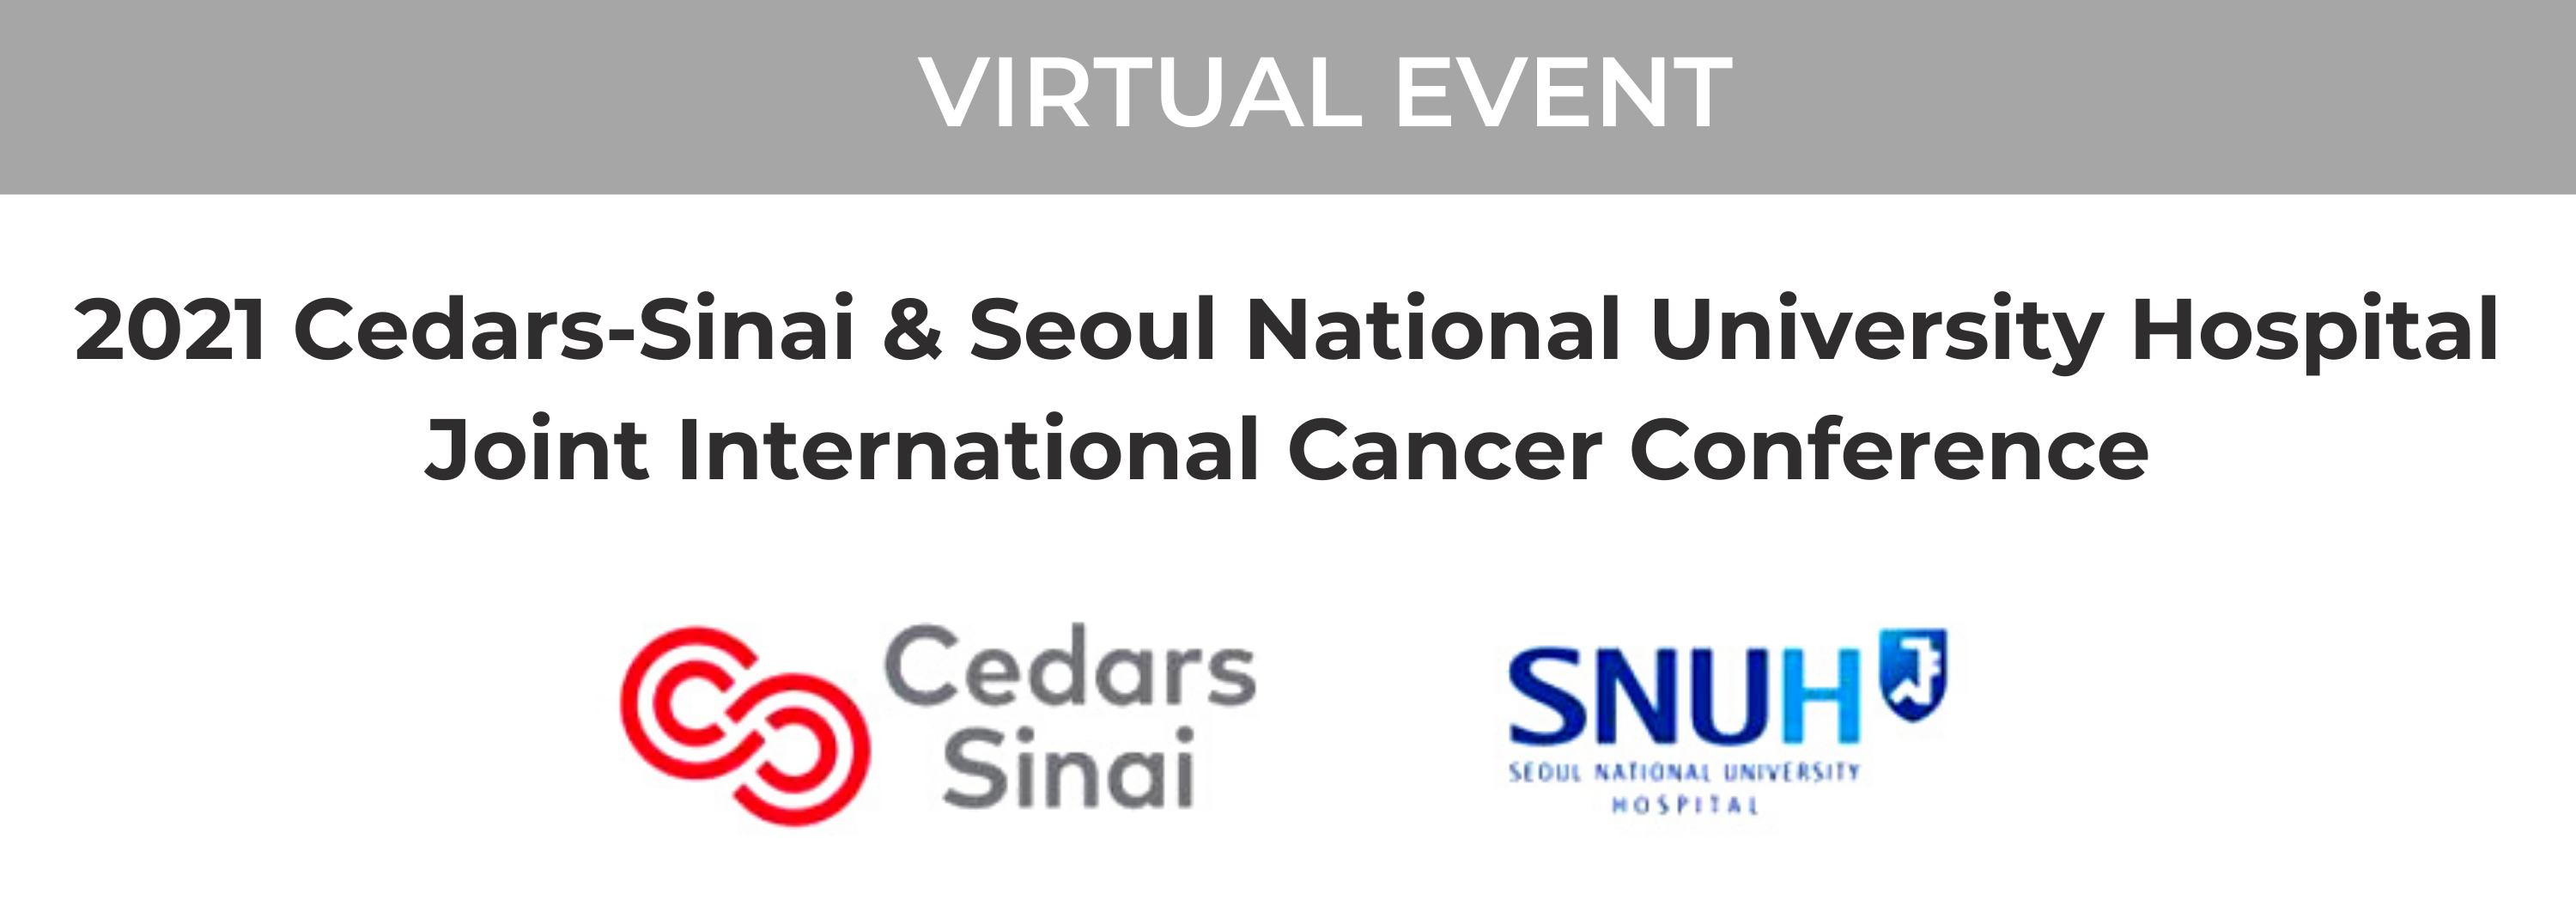 2021 Cedars-Sinai & Seoul National University Hospital Joint International Cancer Conference Banner